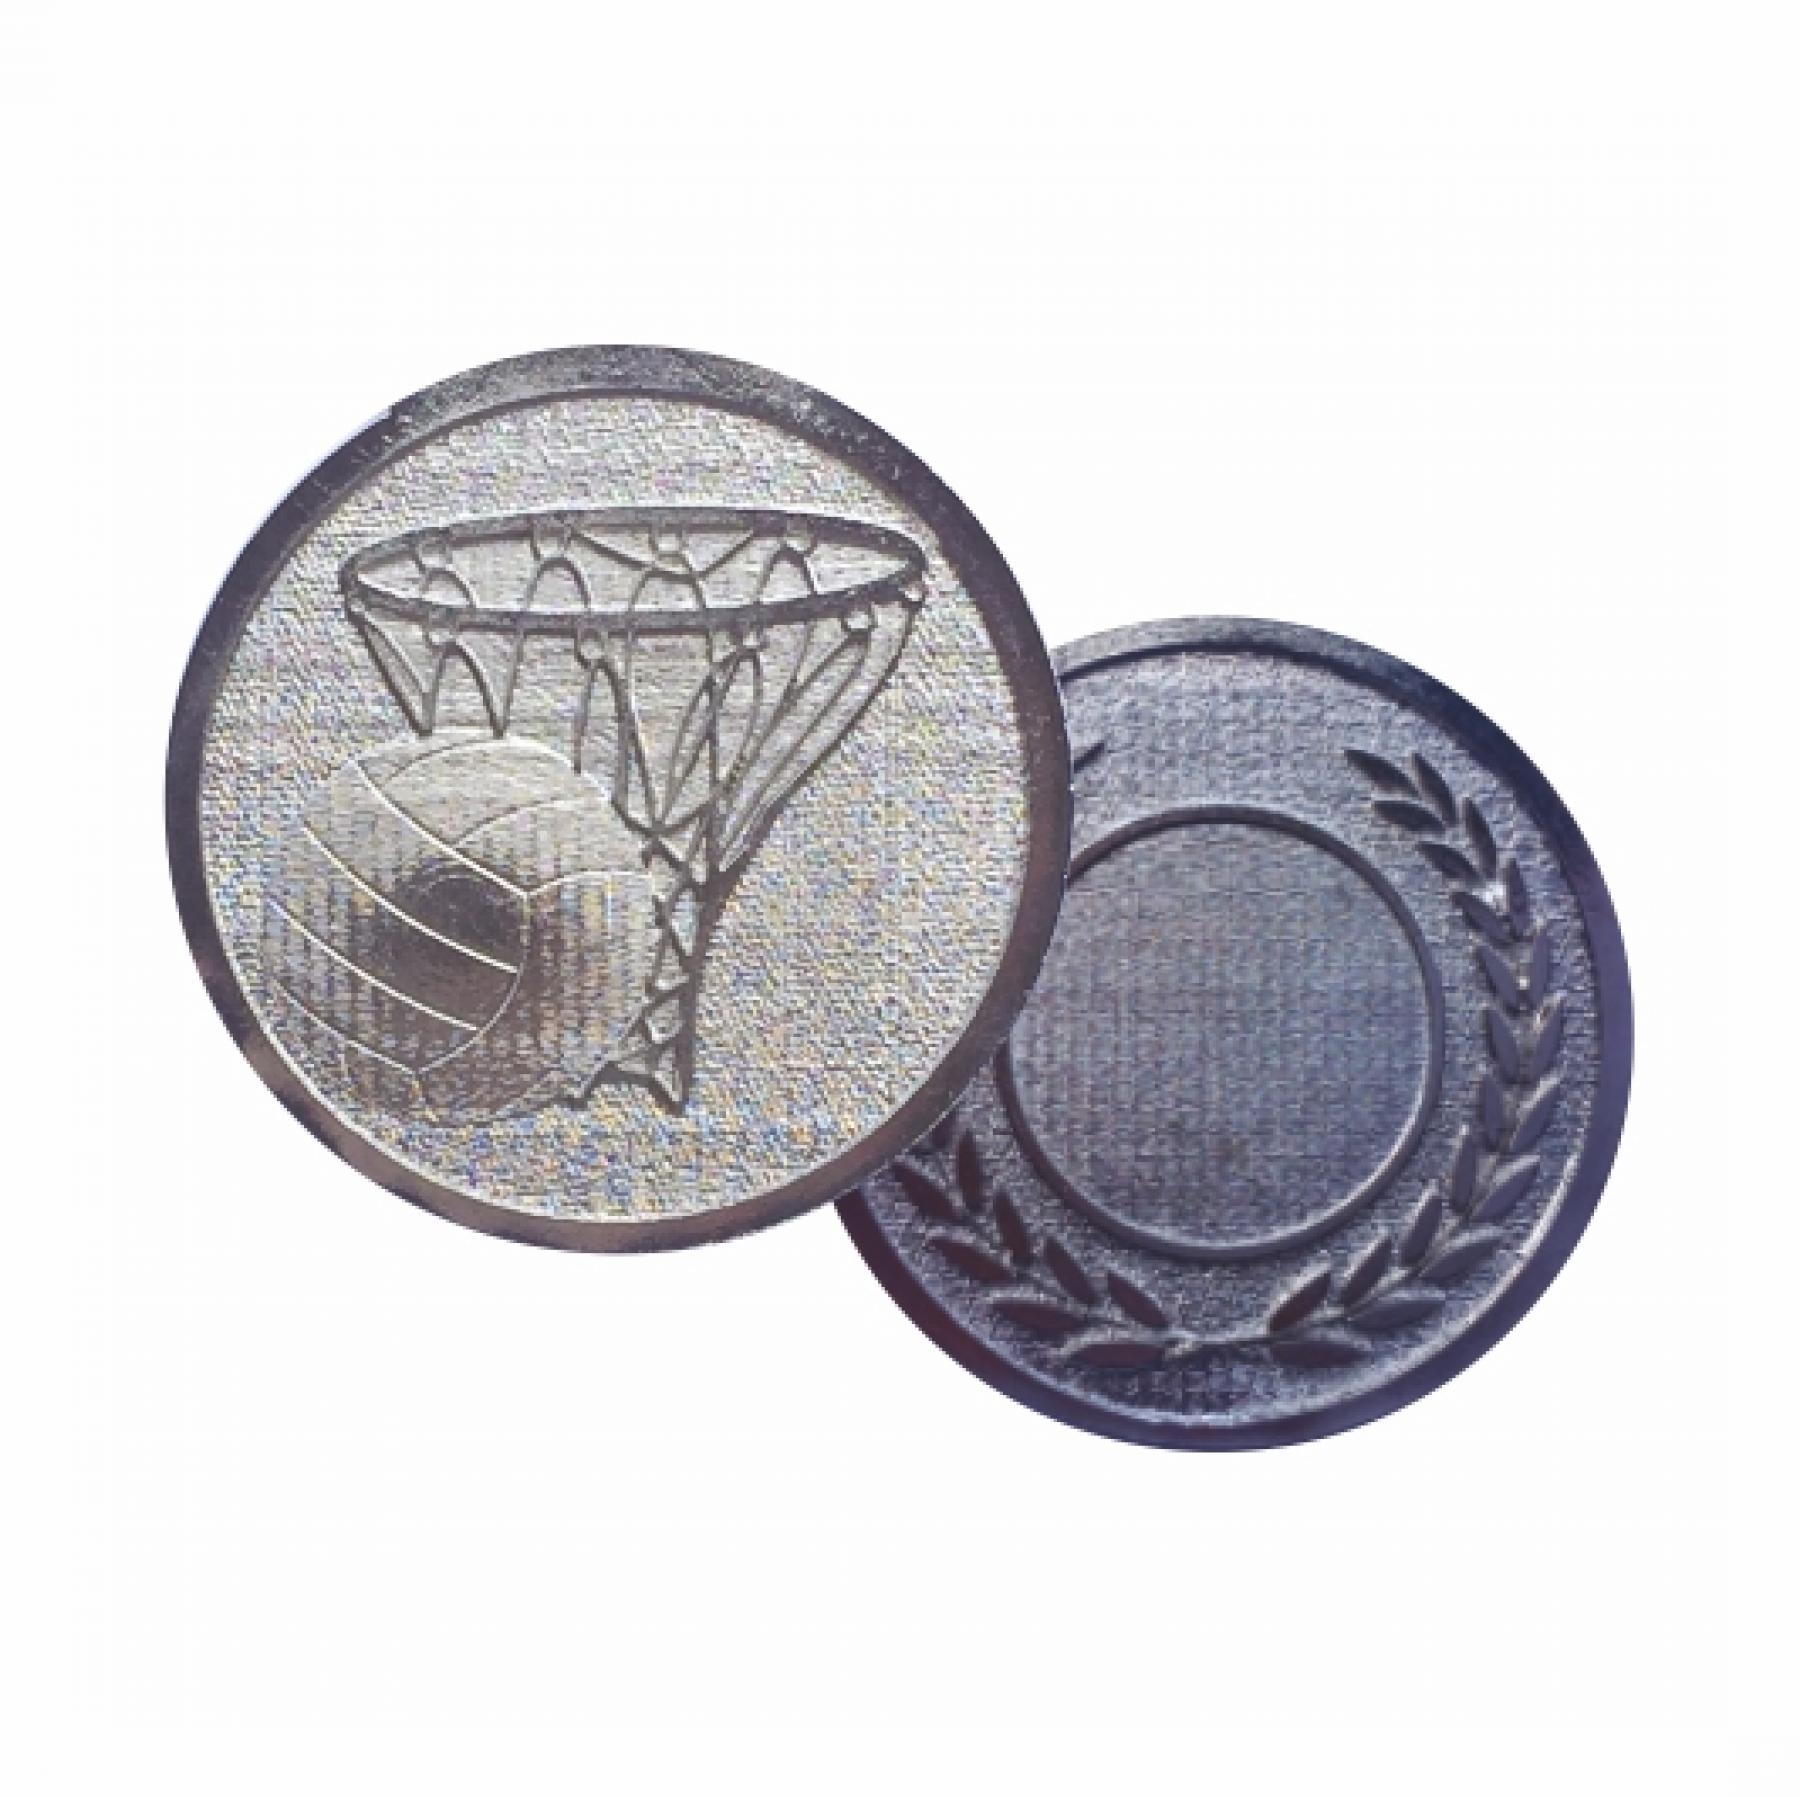 Xco Plated Medals Netball Silver